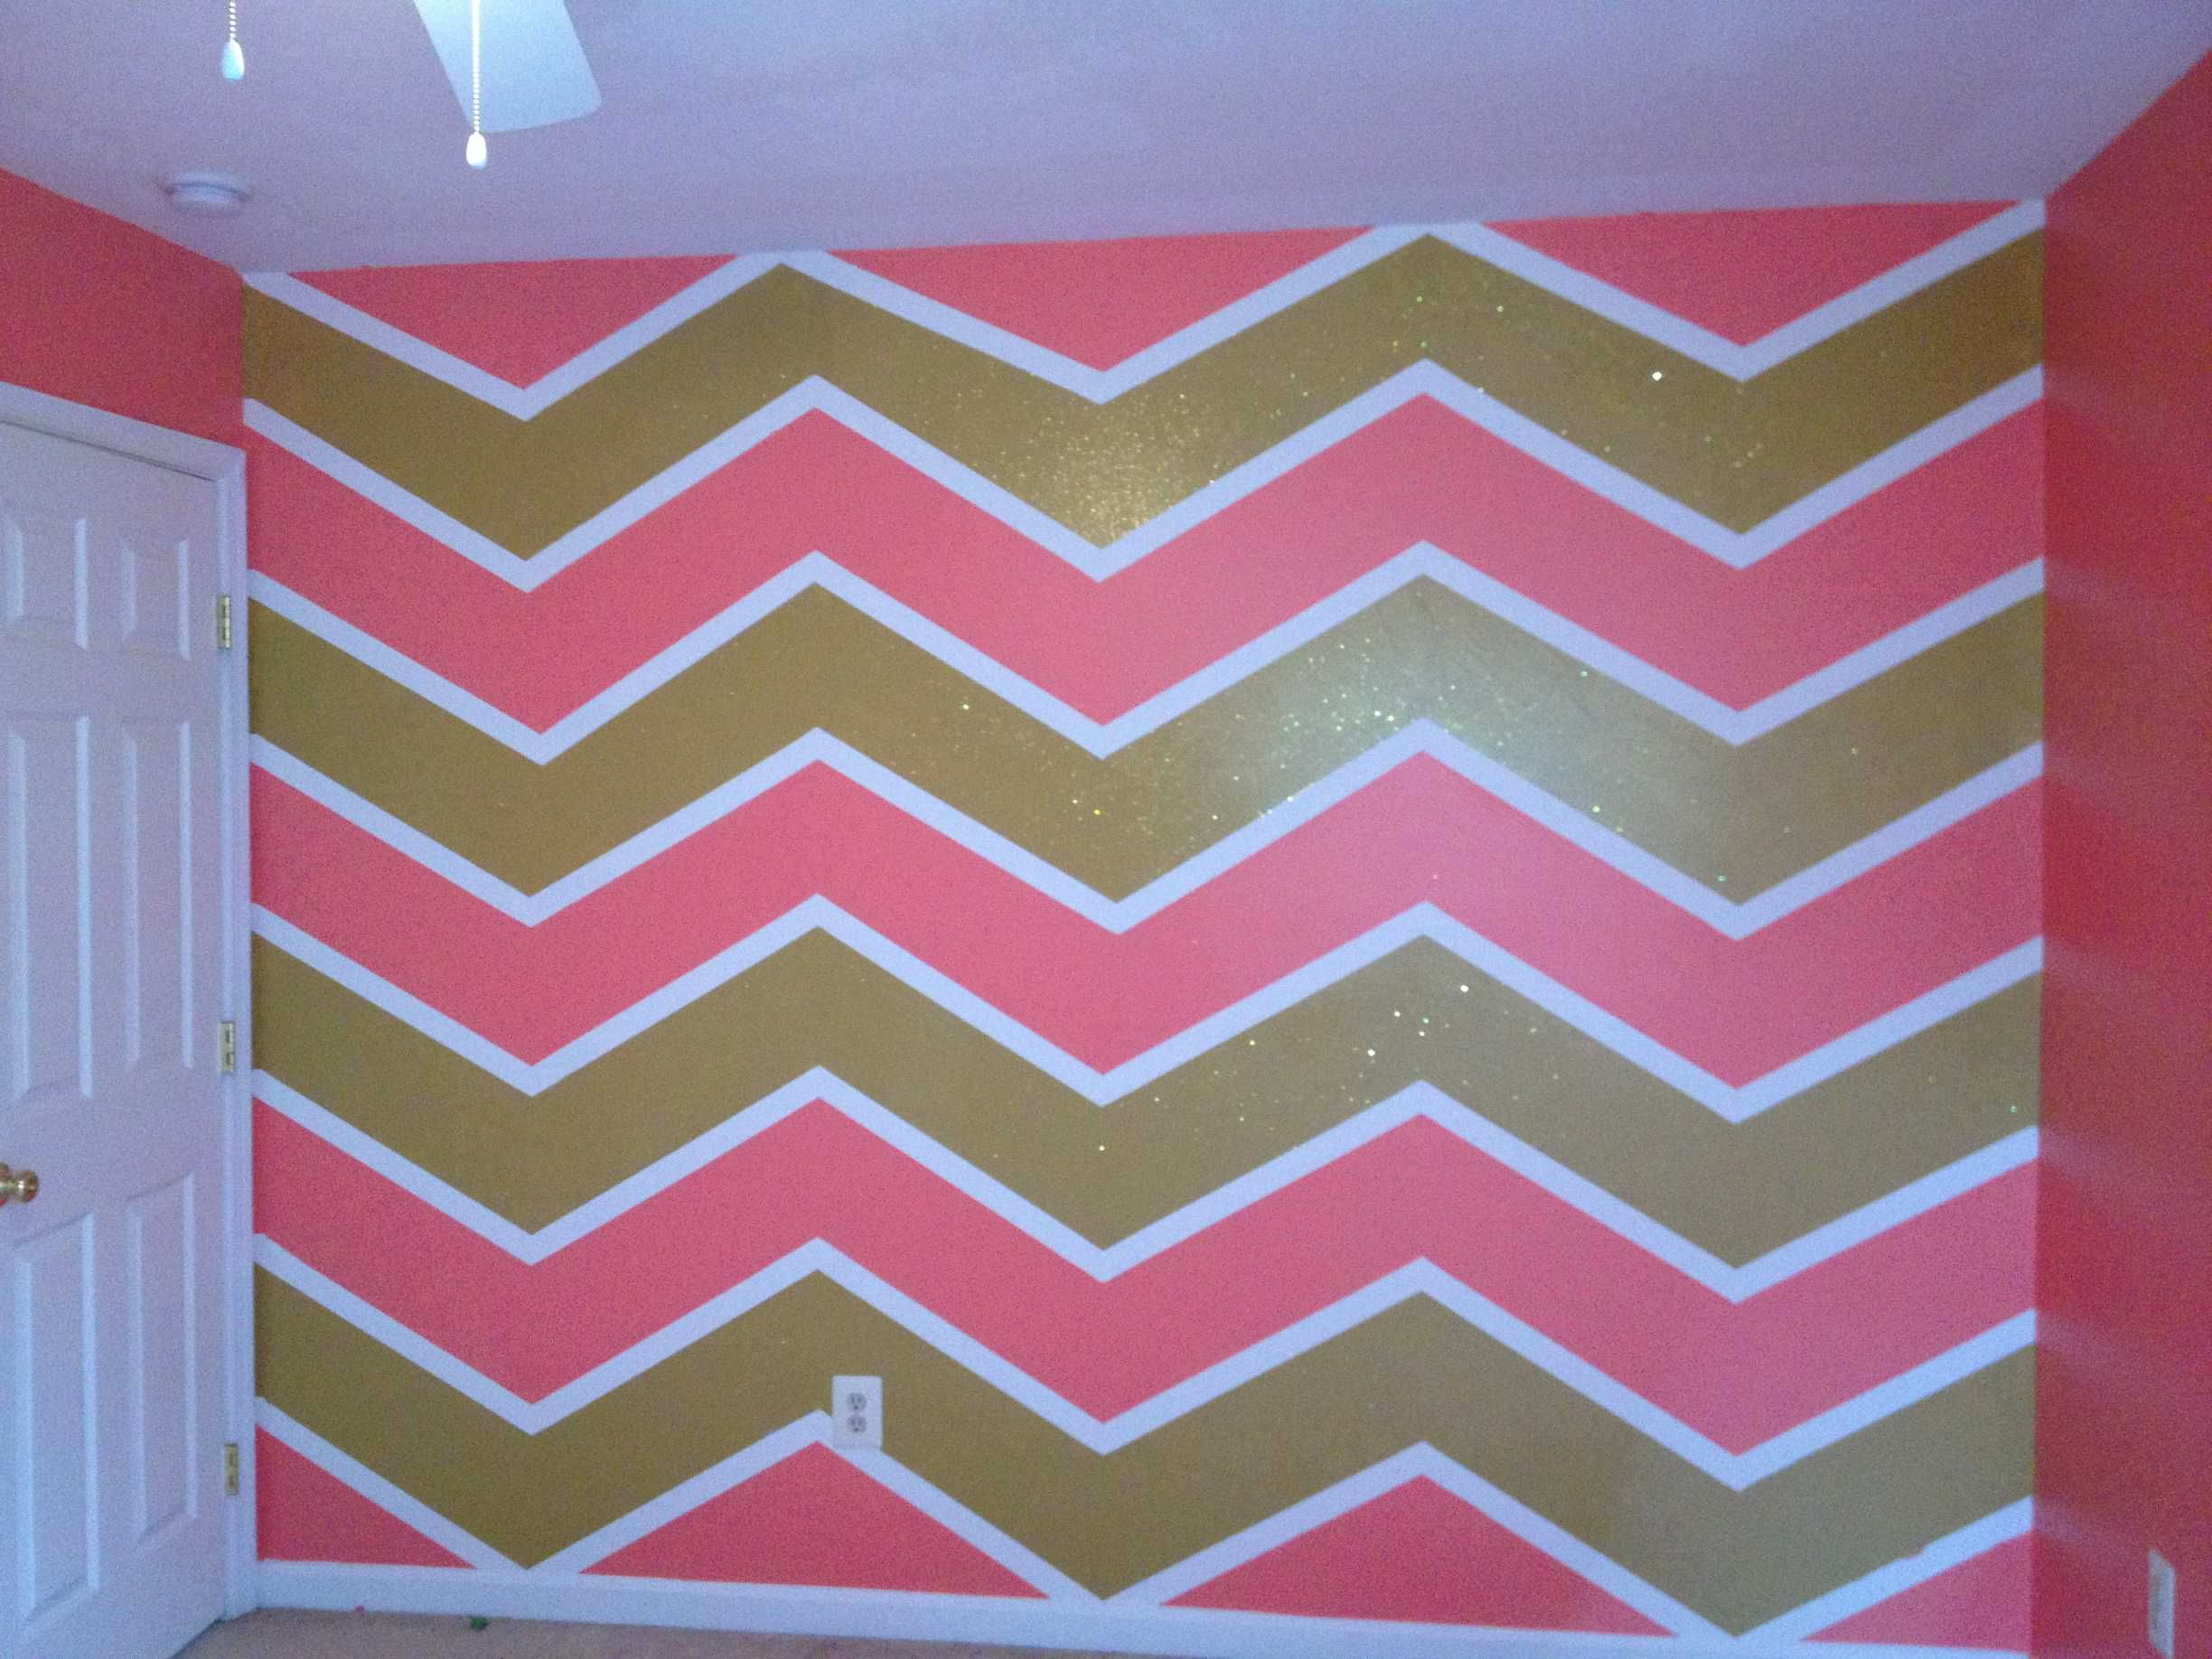 at valentine samford pink my gold set s bedroom day dorm pinterest divine in and university artistic home within table